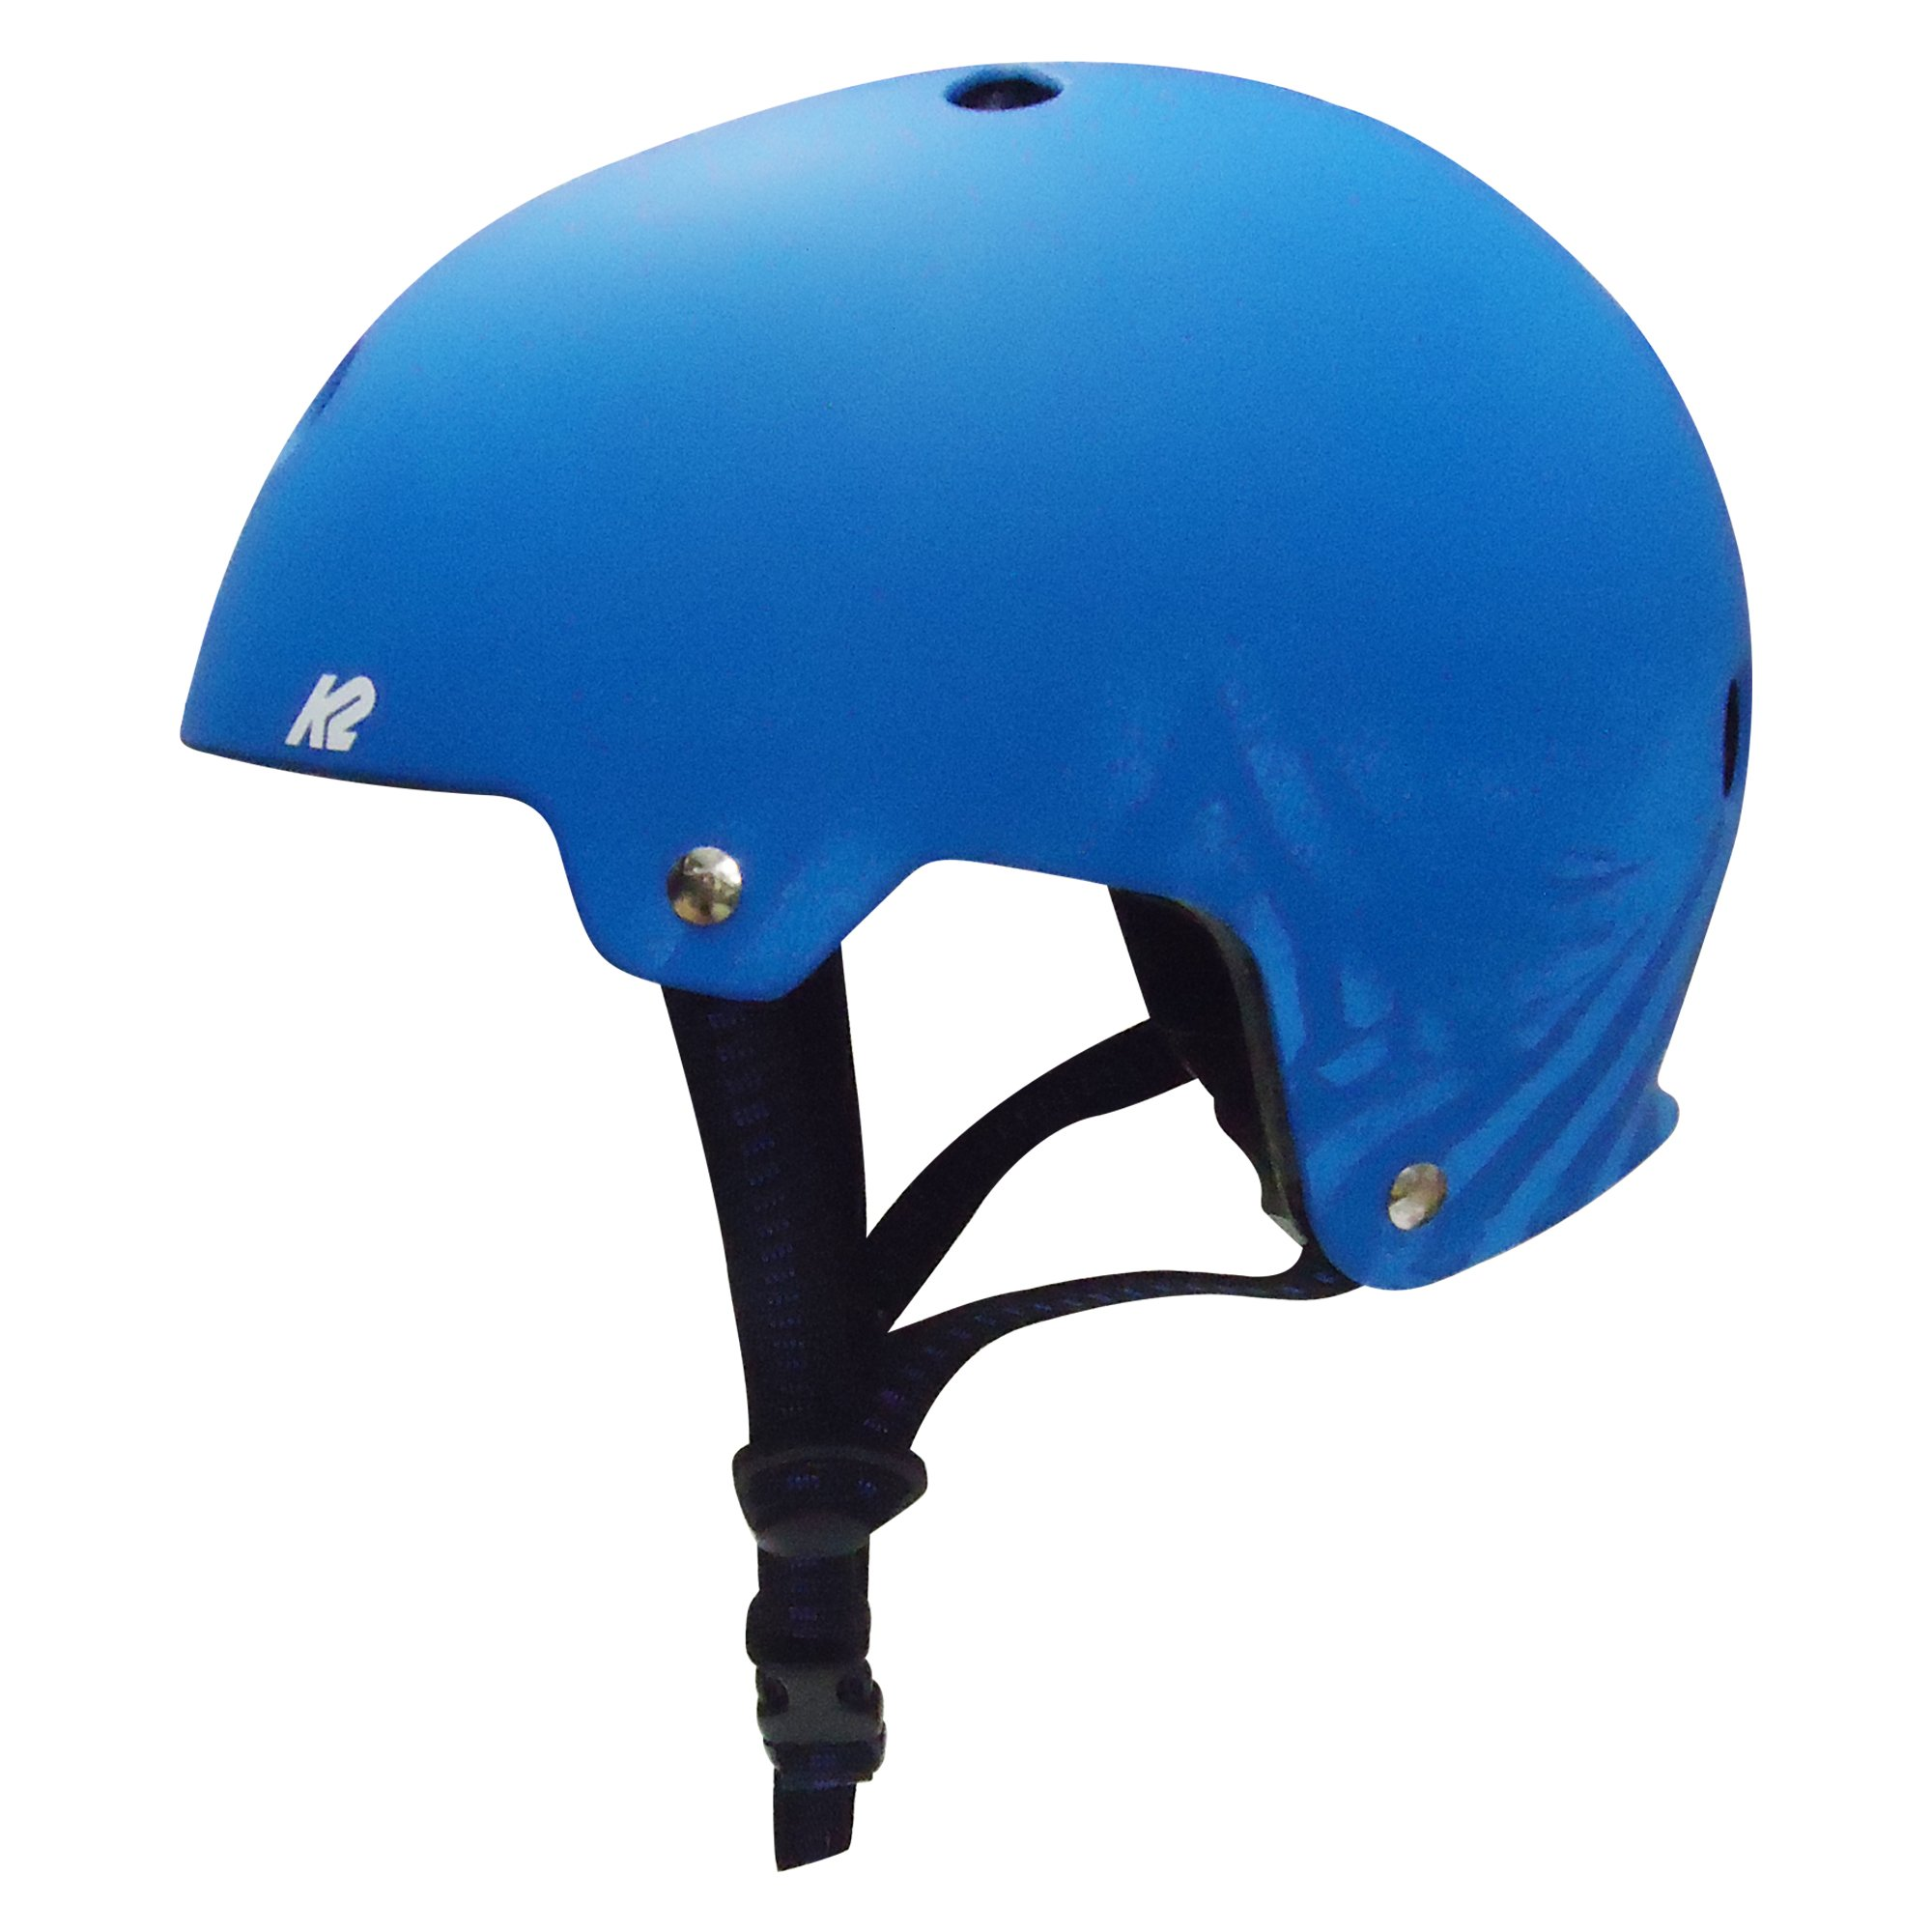 K2 Skate Jr Varsity Youth Helmet, Blue, Medium by K2